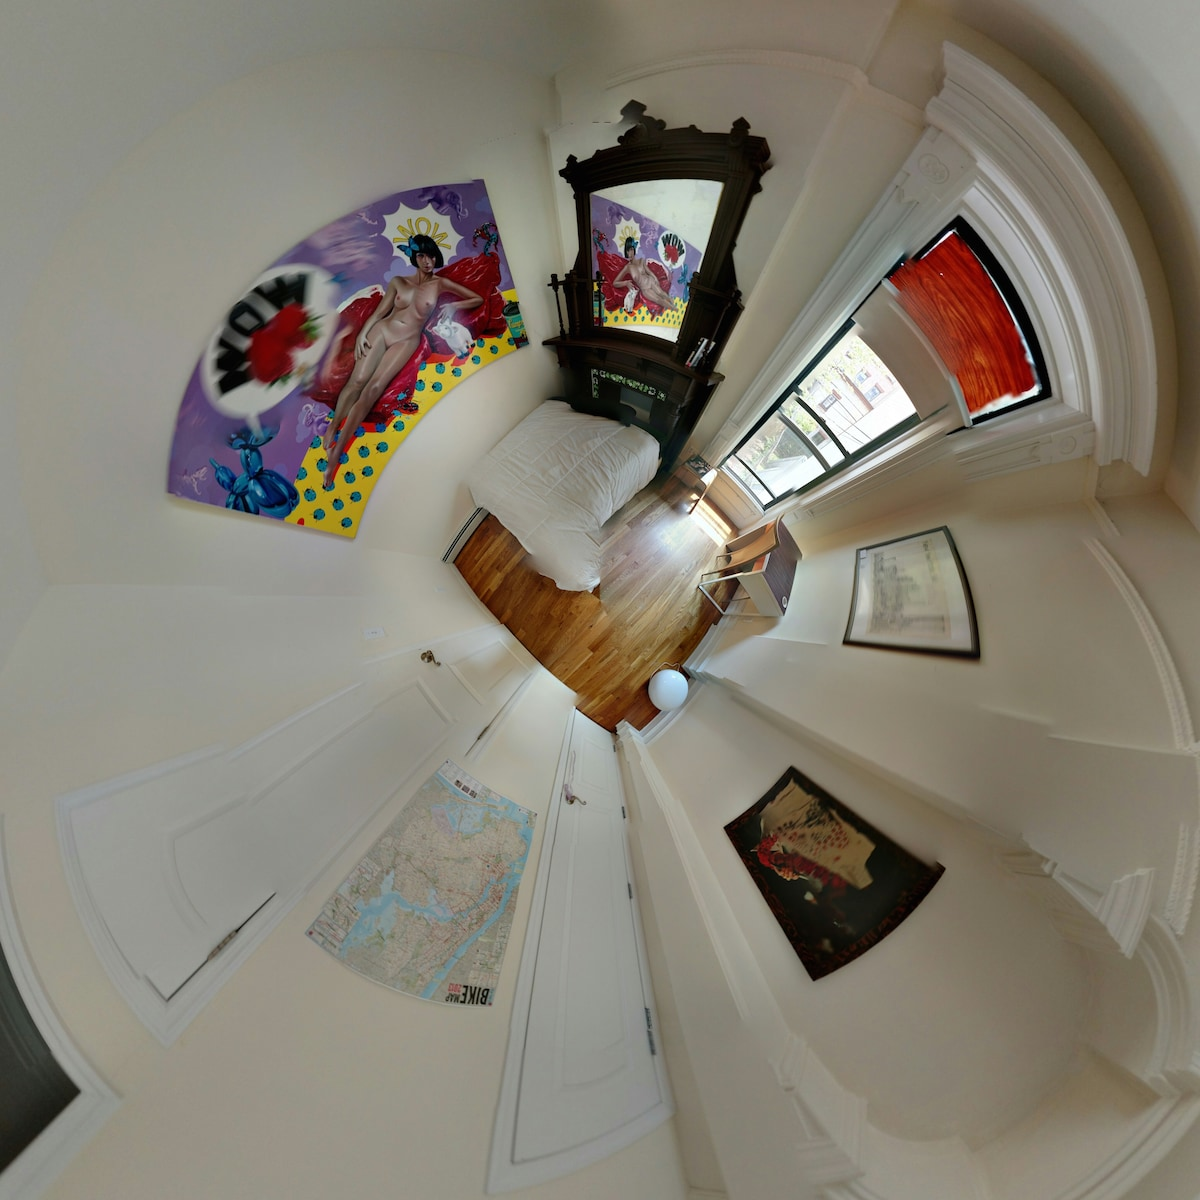 Areal view your bedroom